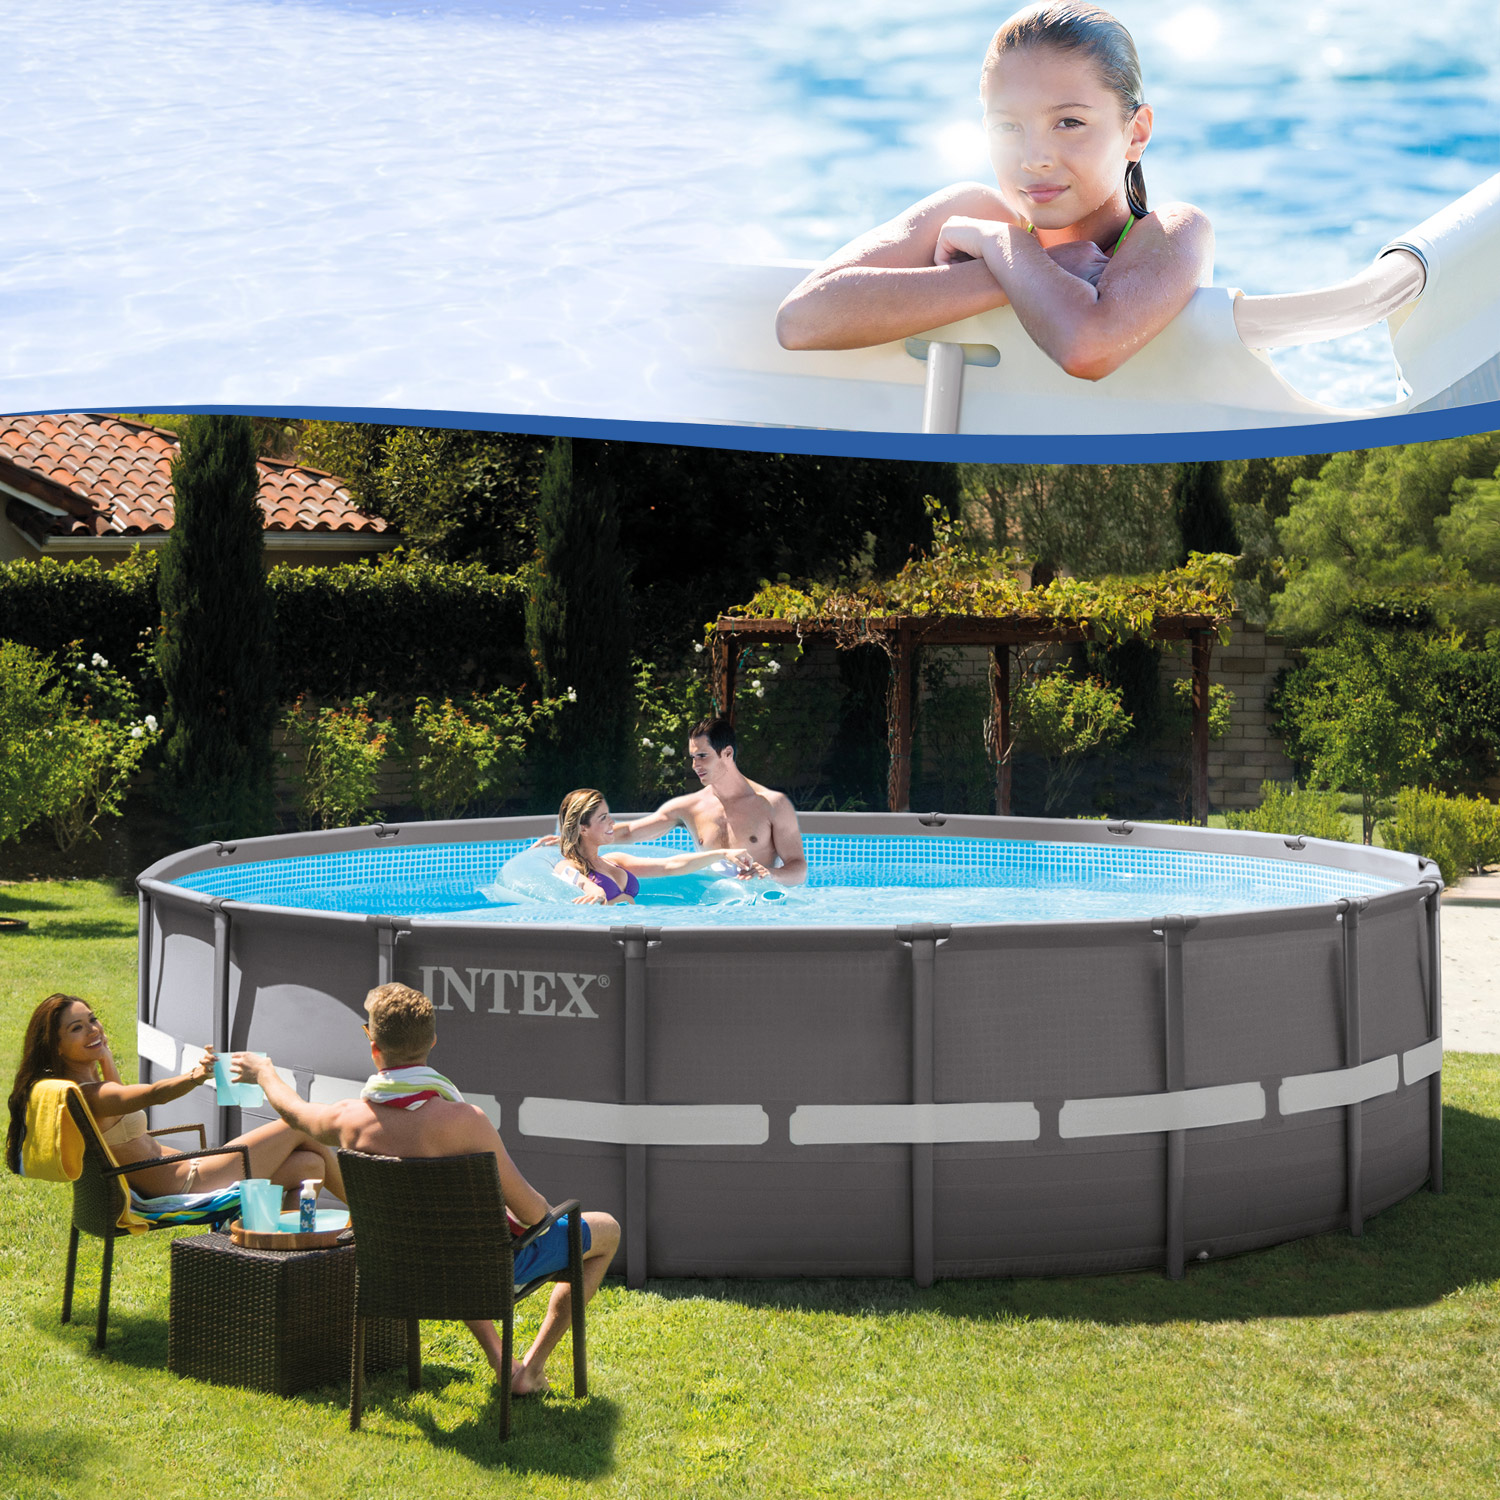 intex 488x122 schwimmbecken swimming pool schwimmbad. Black Bedroom Furniture Sets. Home Design Ideas